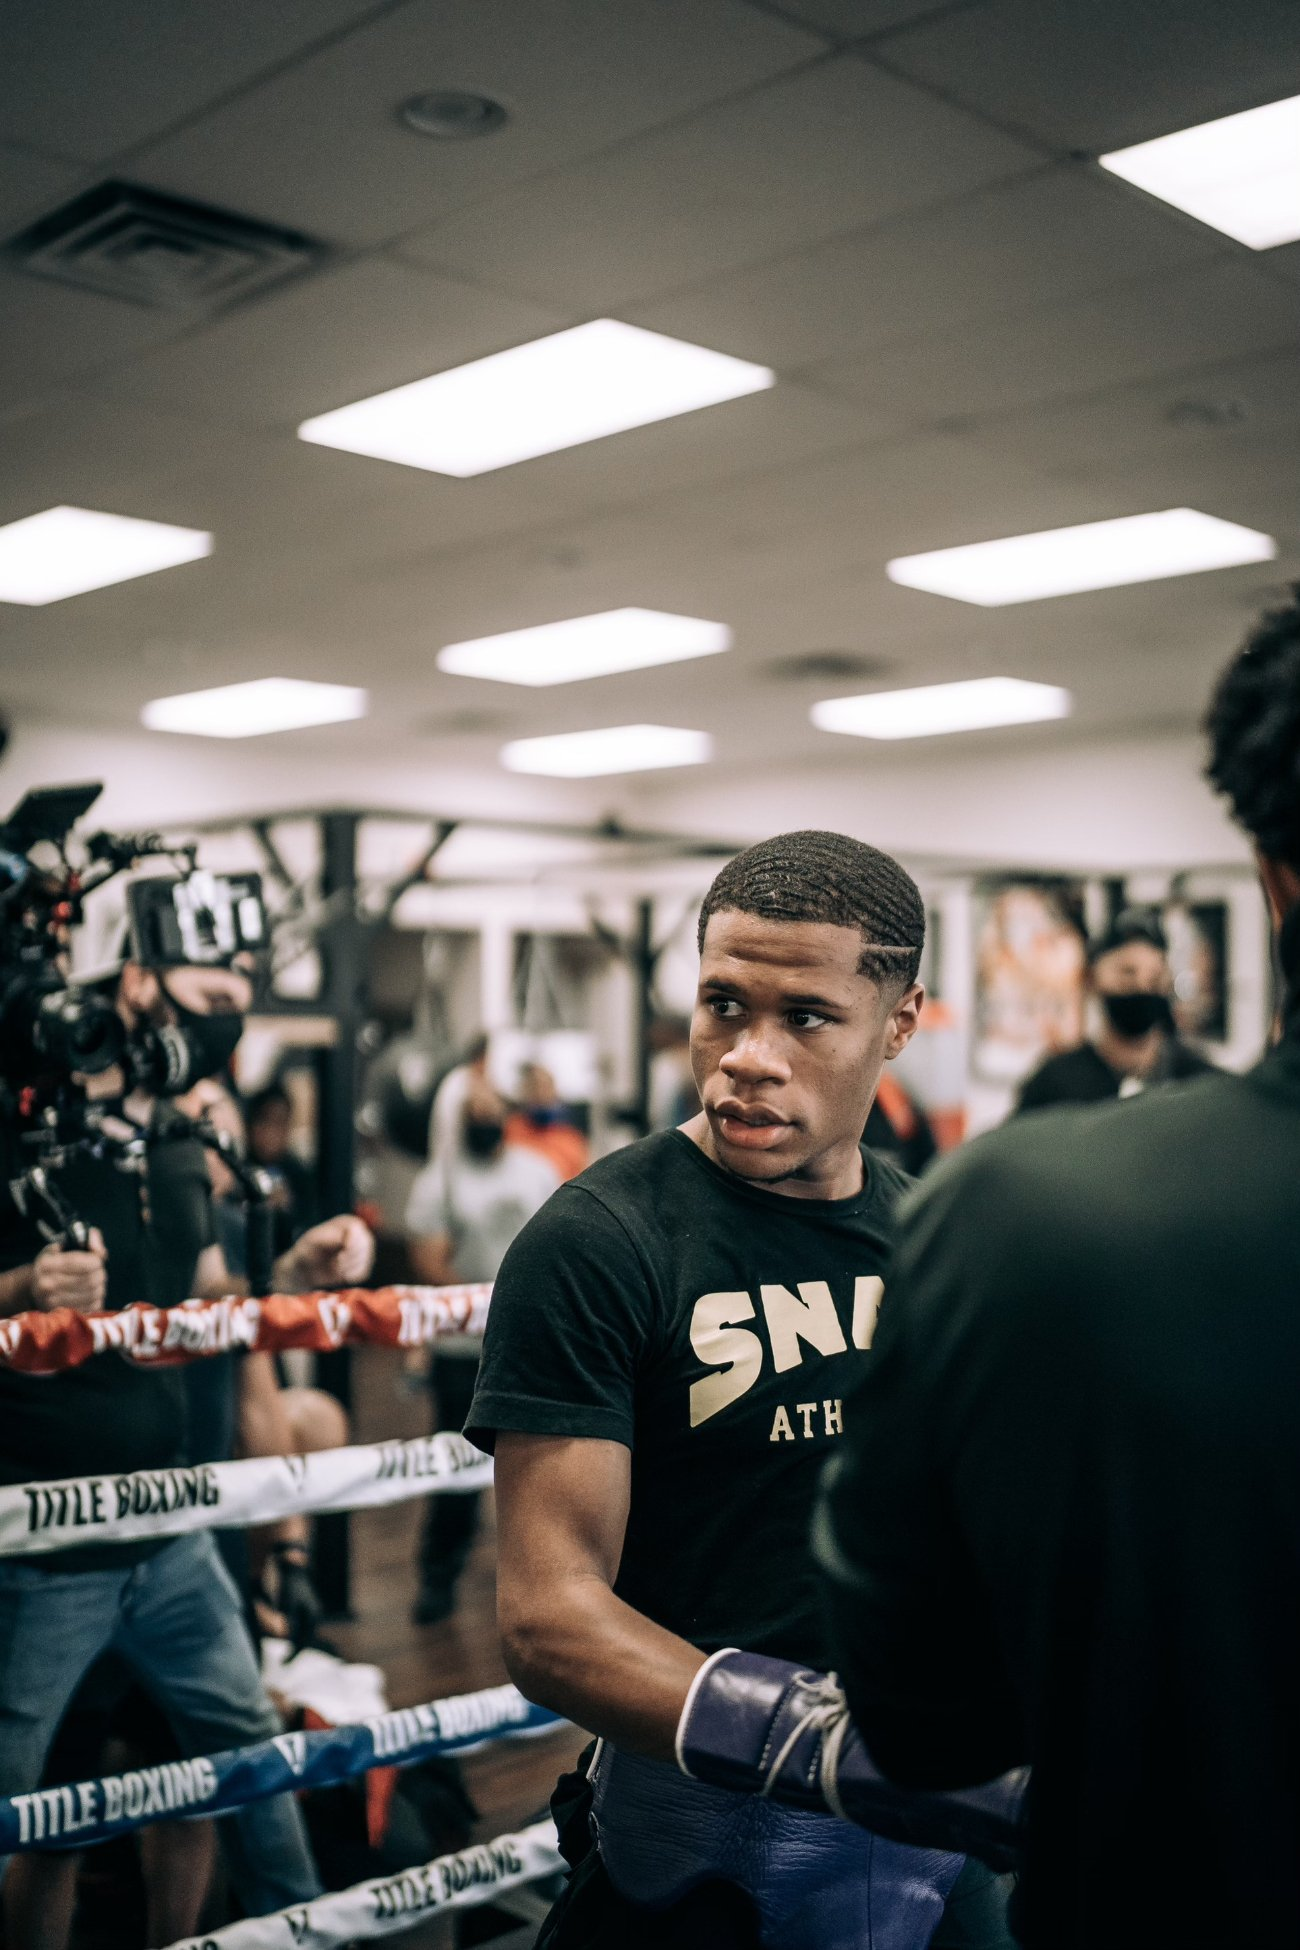 """Devin Haney, Yuriorkis Gamboa - Undefeated WBC lightweight world champion Devin """"The Dream"""" Haney (24-0, 15 KOs) will return to the ring on November 7, 2020, against former 2004 Olympic Gold Medalist and two-time world champion Yuriorkis Gamboa (30-3, 18 KOs)."""